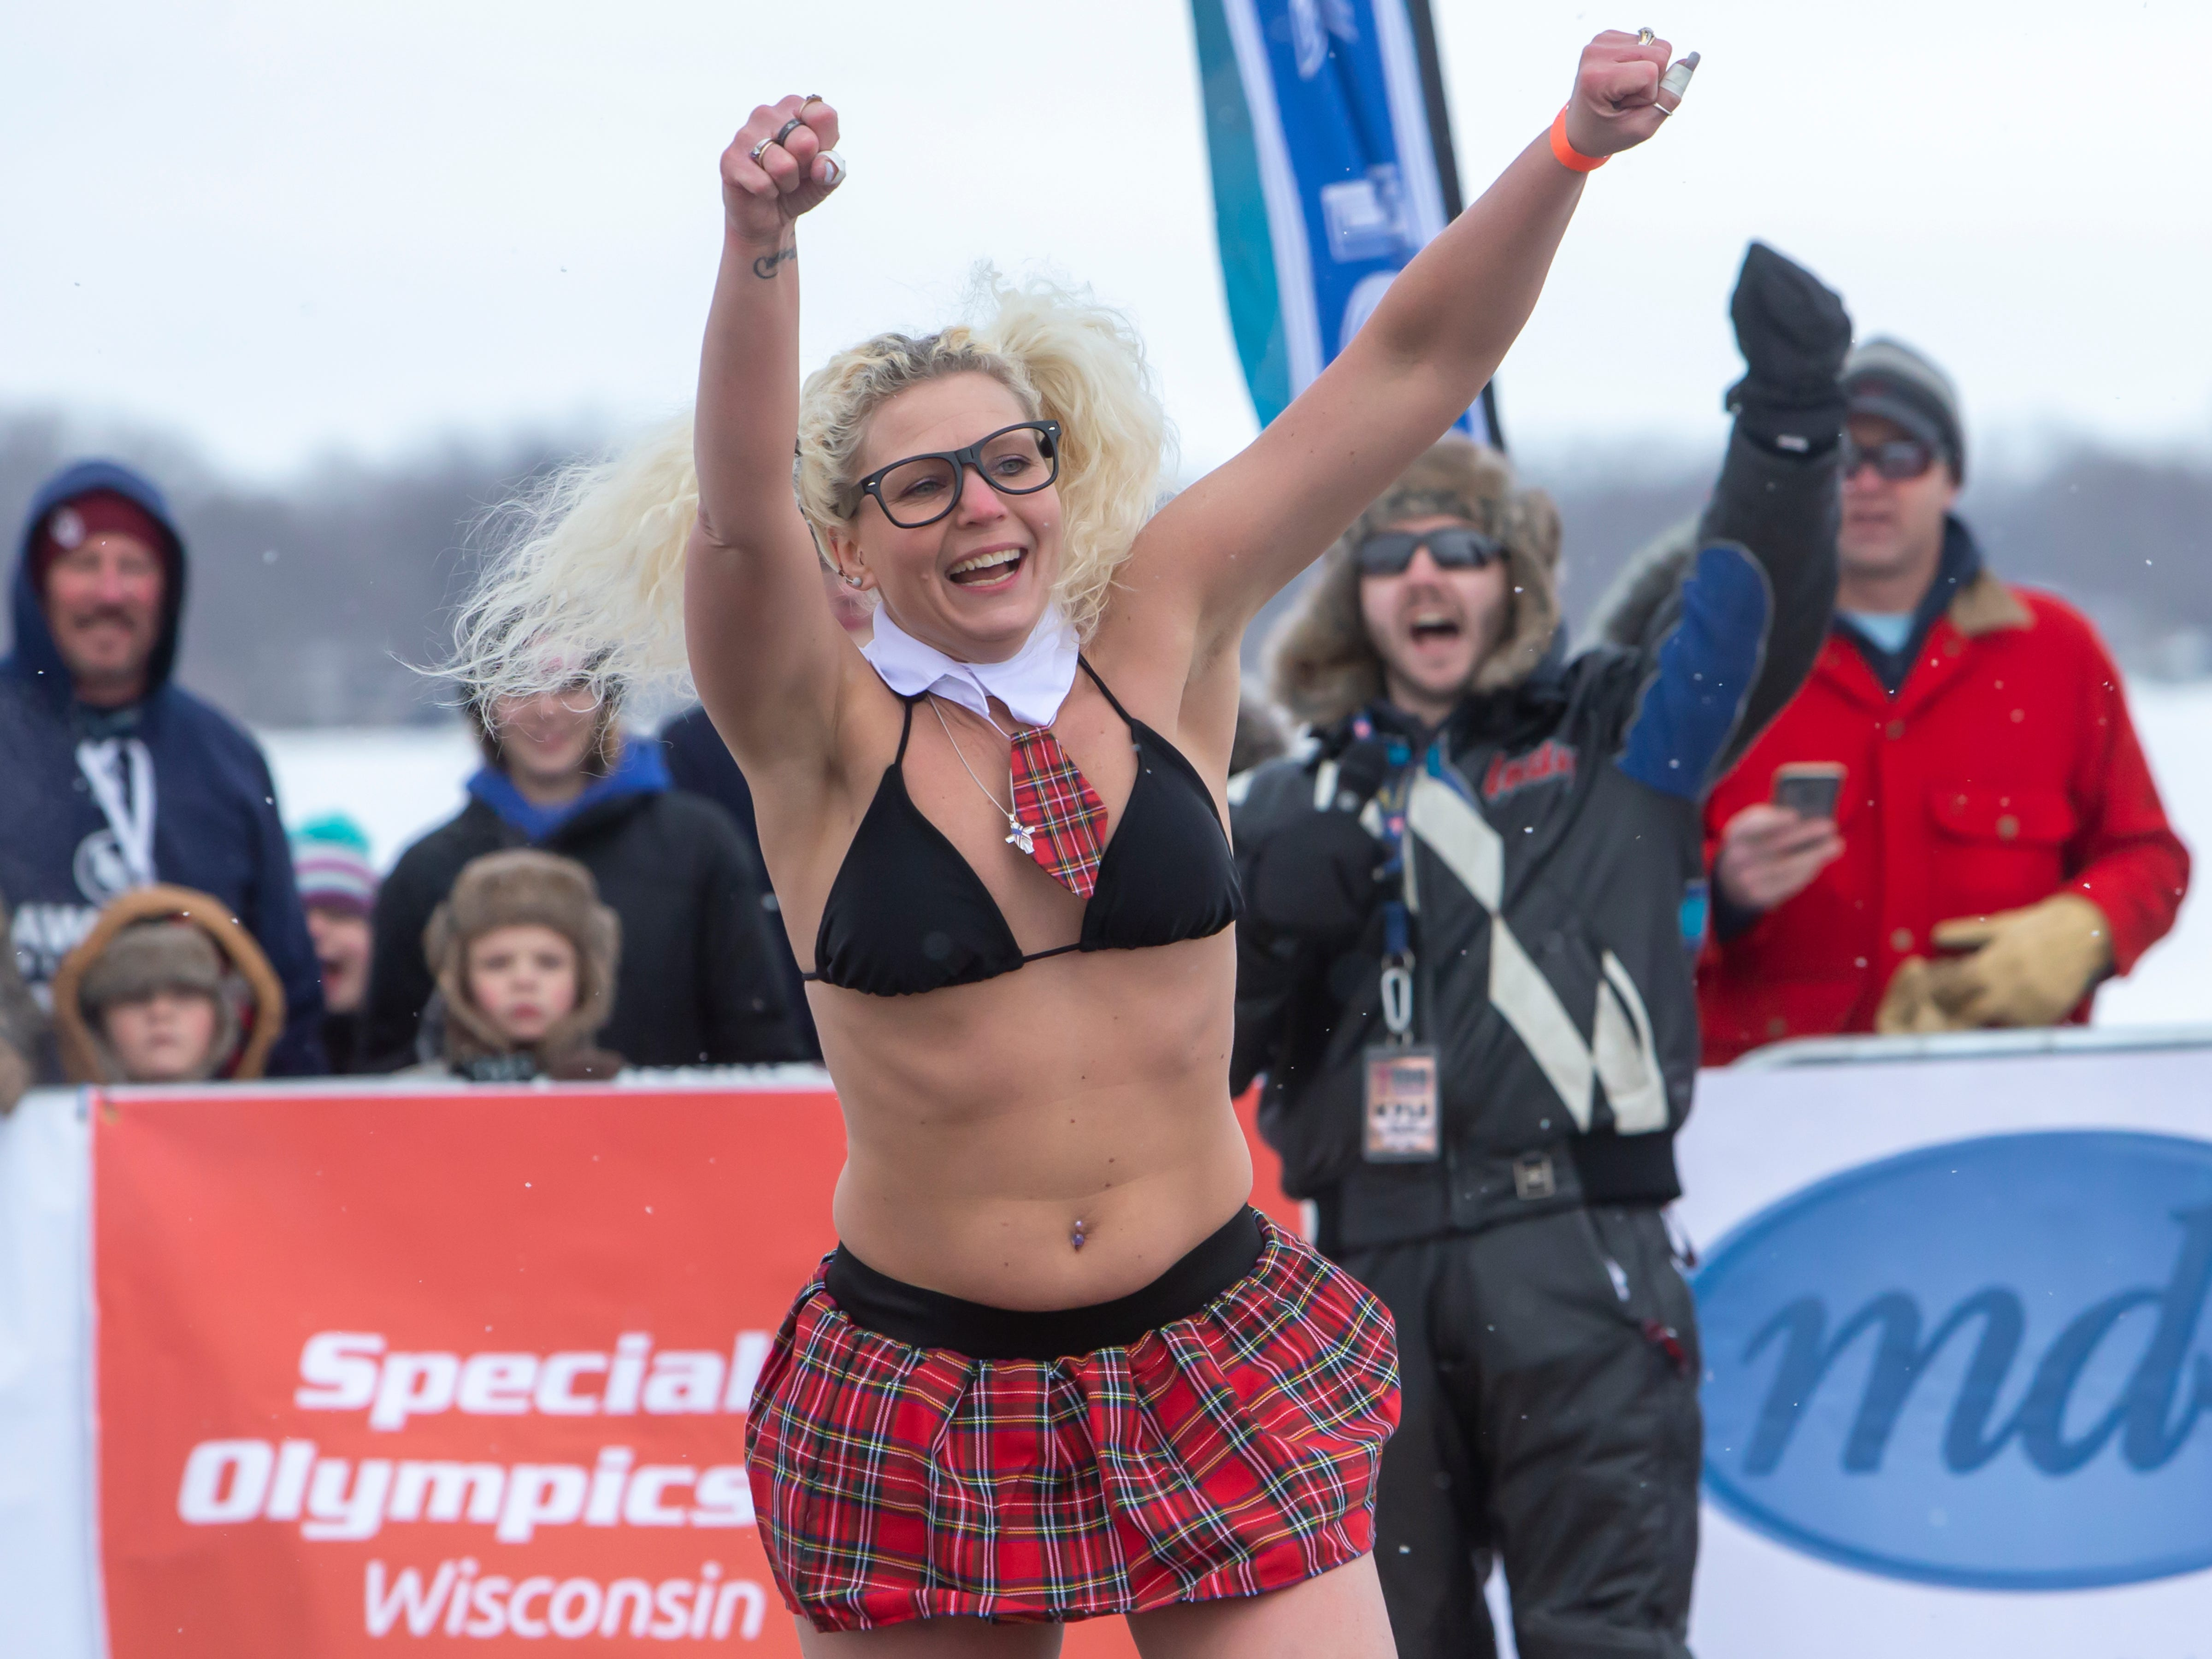 Jari Hall is a super plunger taking the first jump during the Special Olympics Wisconsin Polar Plunge in Oshkosh, Wis., on Saturday, February 16, 2019, at Miller's Bay in Menominee Park.